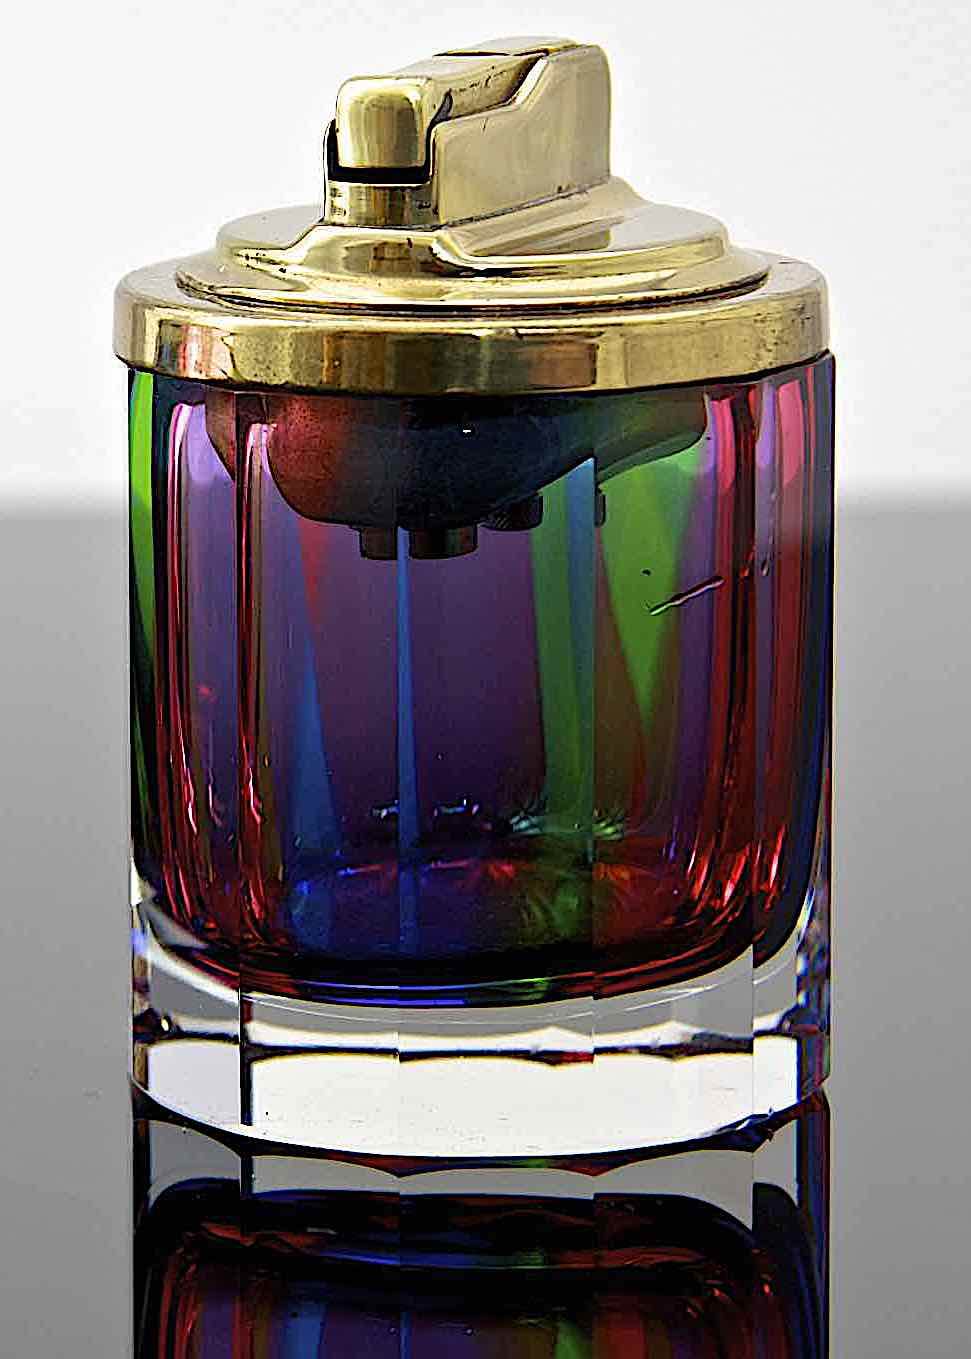 a 1970s glass cigarette lighter by Murano in a color photograph